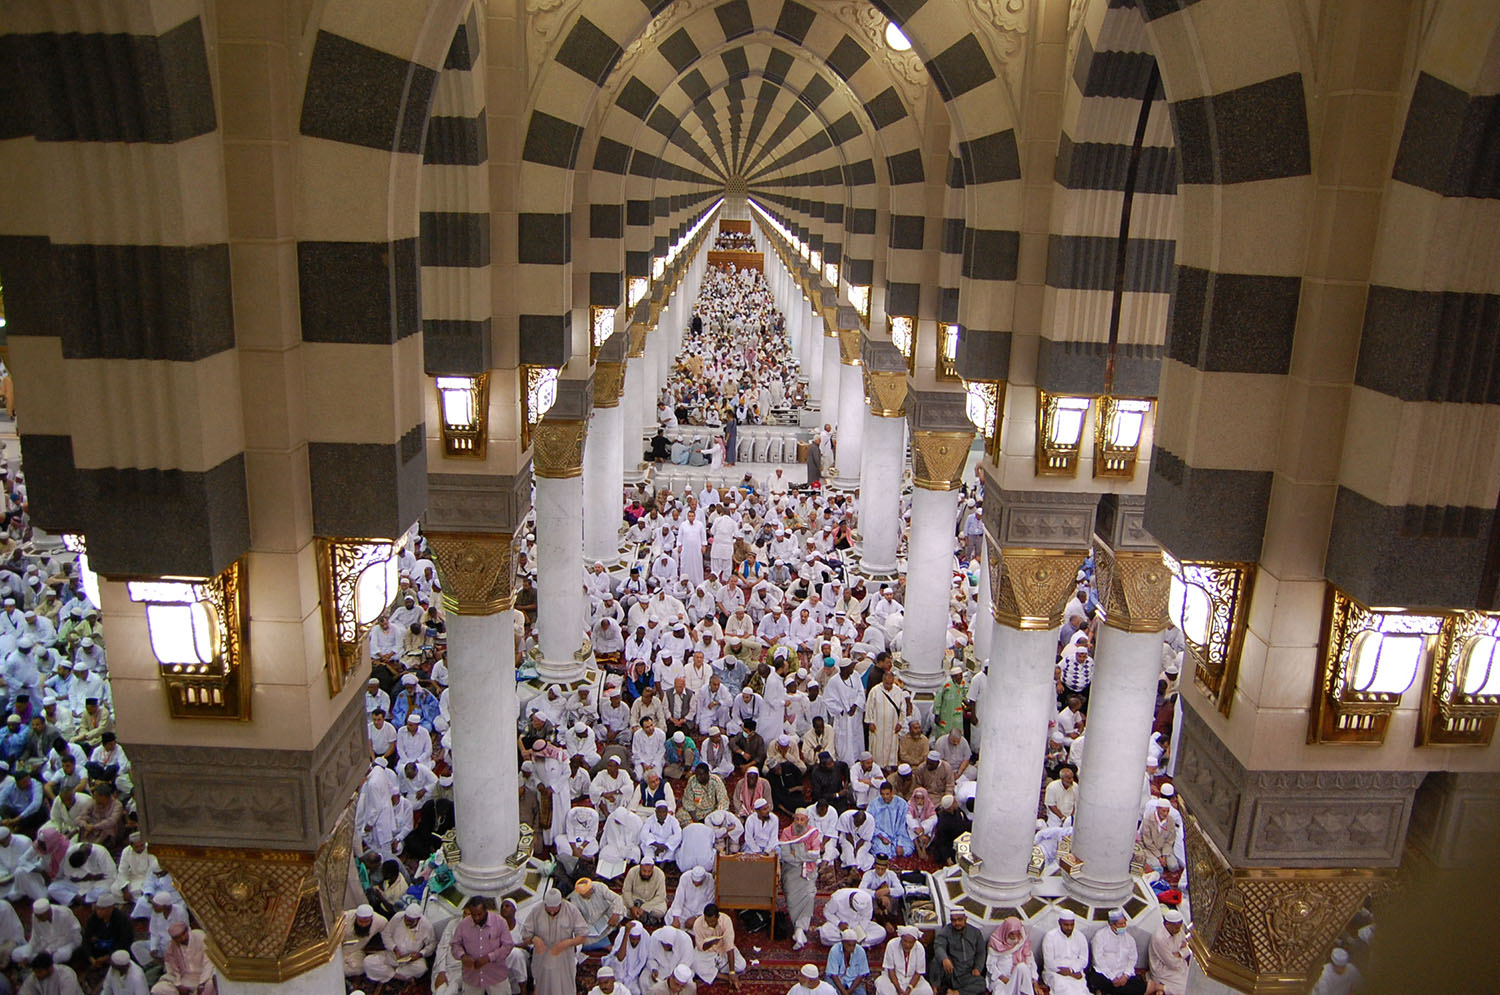 The maze of arches that fill the interior of the Masjid al-Nabi.